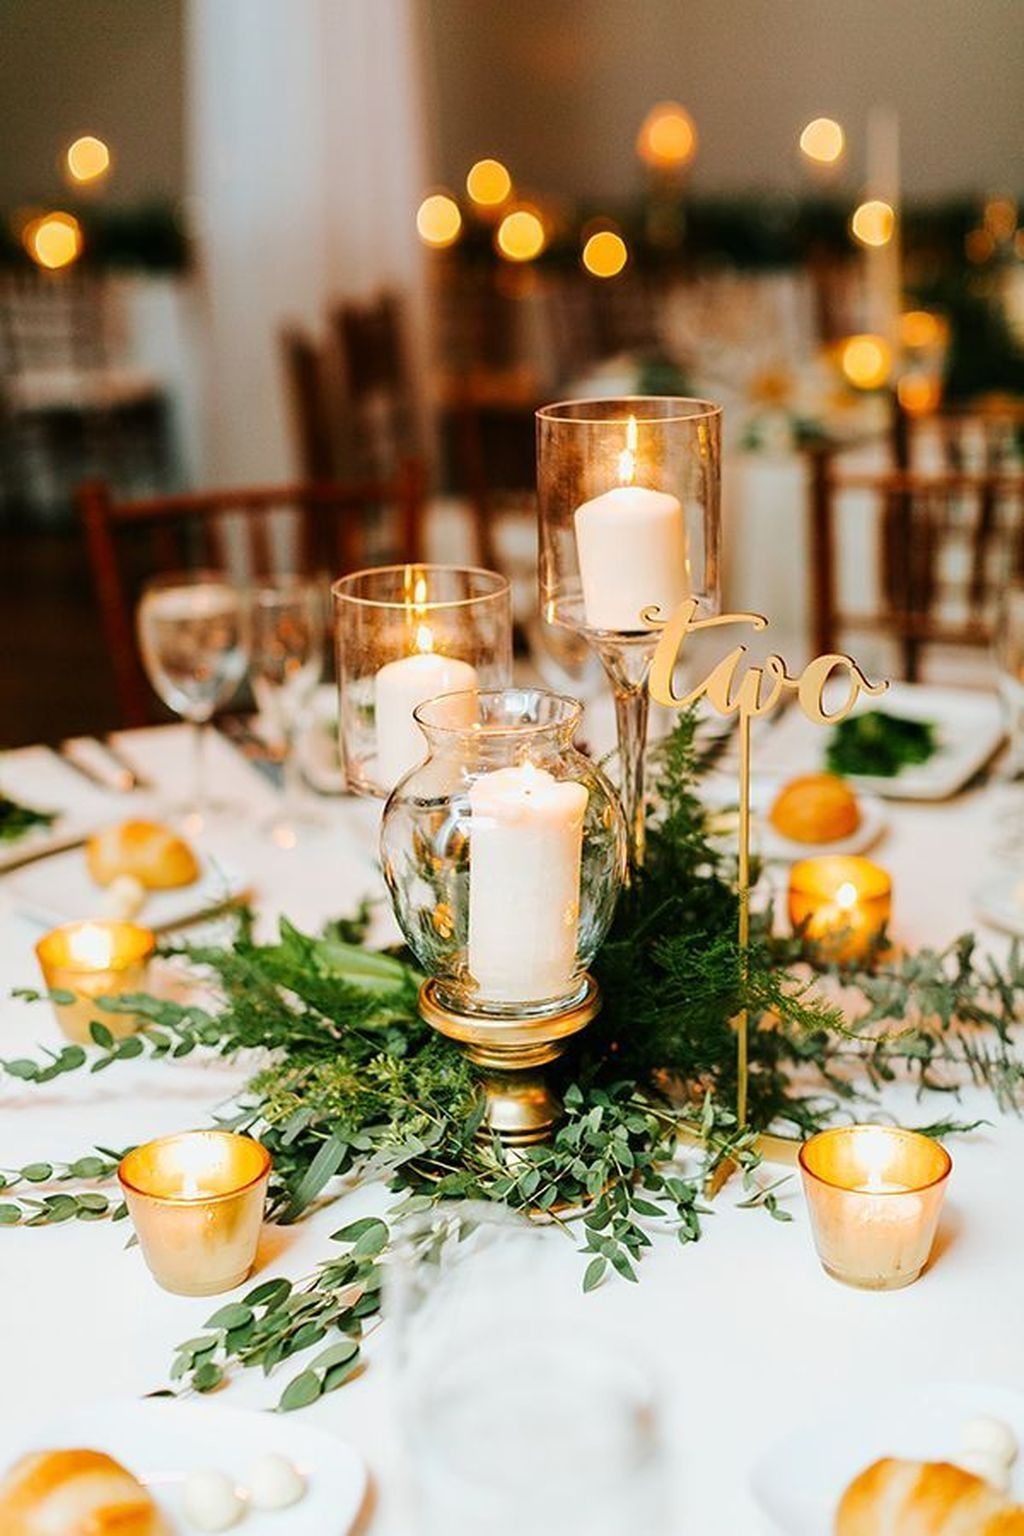 The Best Winter Table Decorations You Need To Try 46